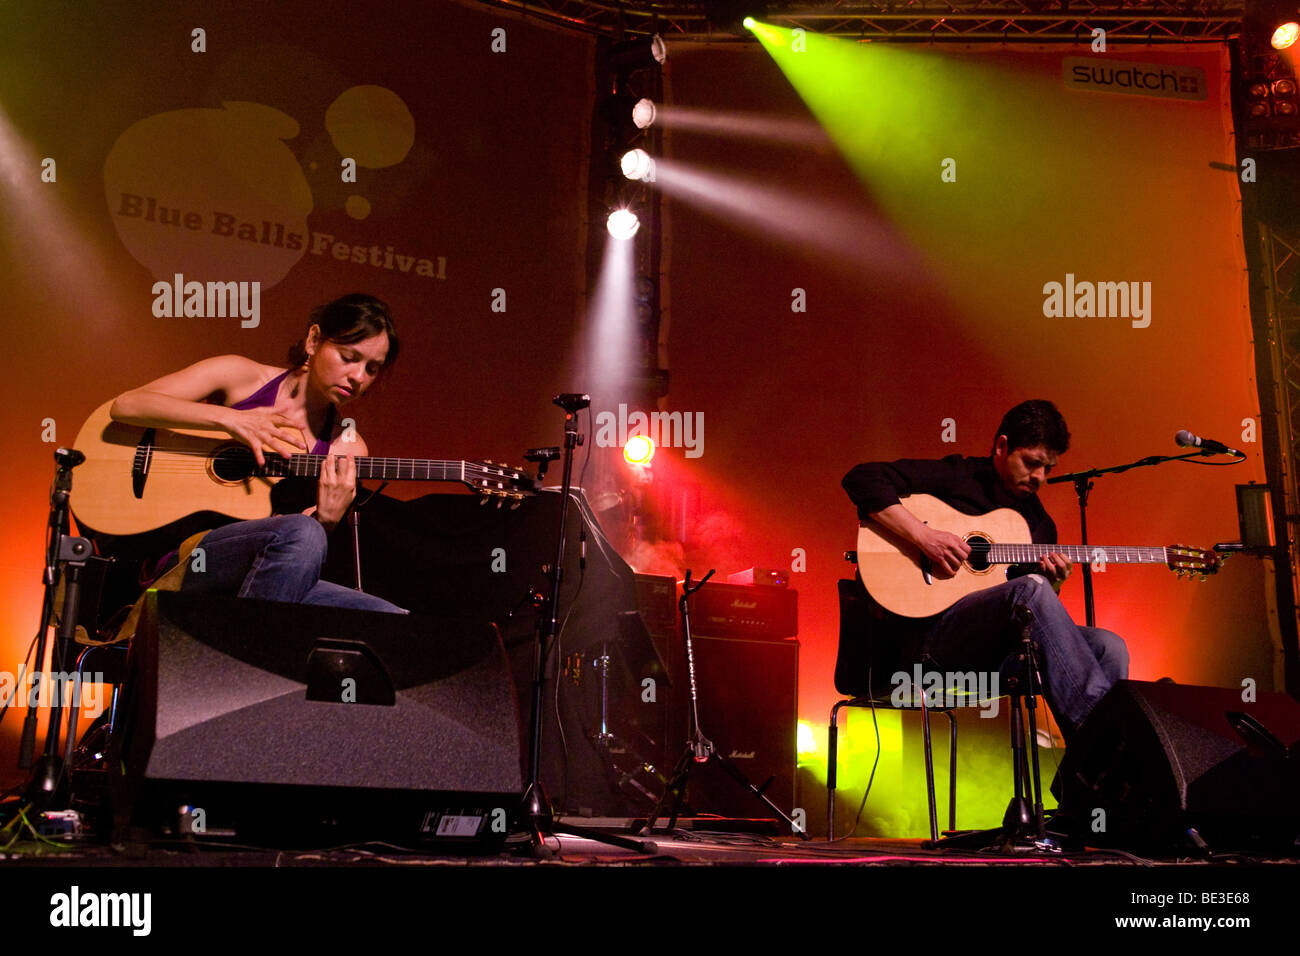 Mexican guitar duo Rodrigo Y Gabriela performing live at the Blue Balls Festival in the Lucerne Hall of the KKL - Stock Image